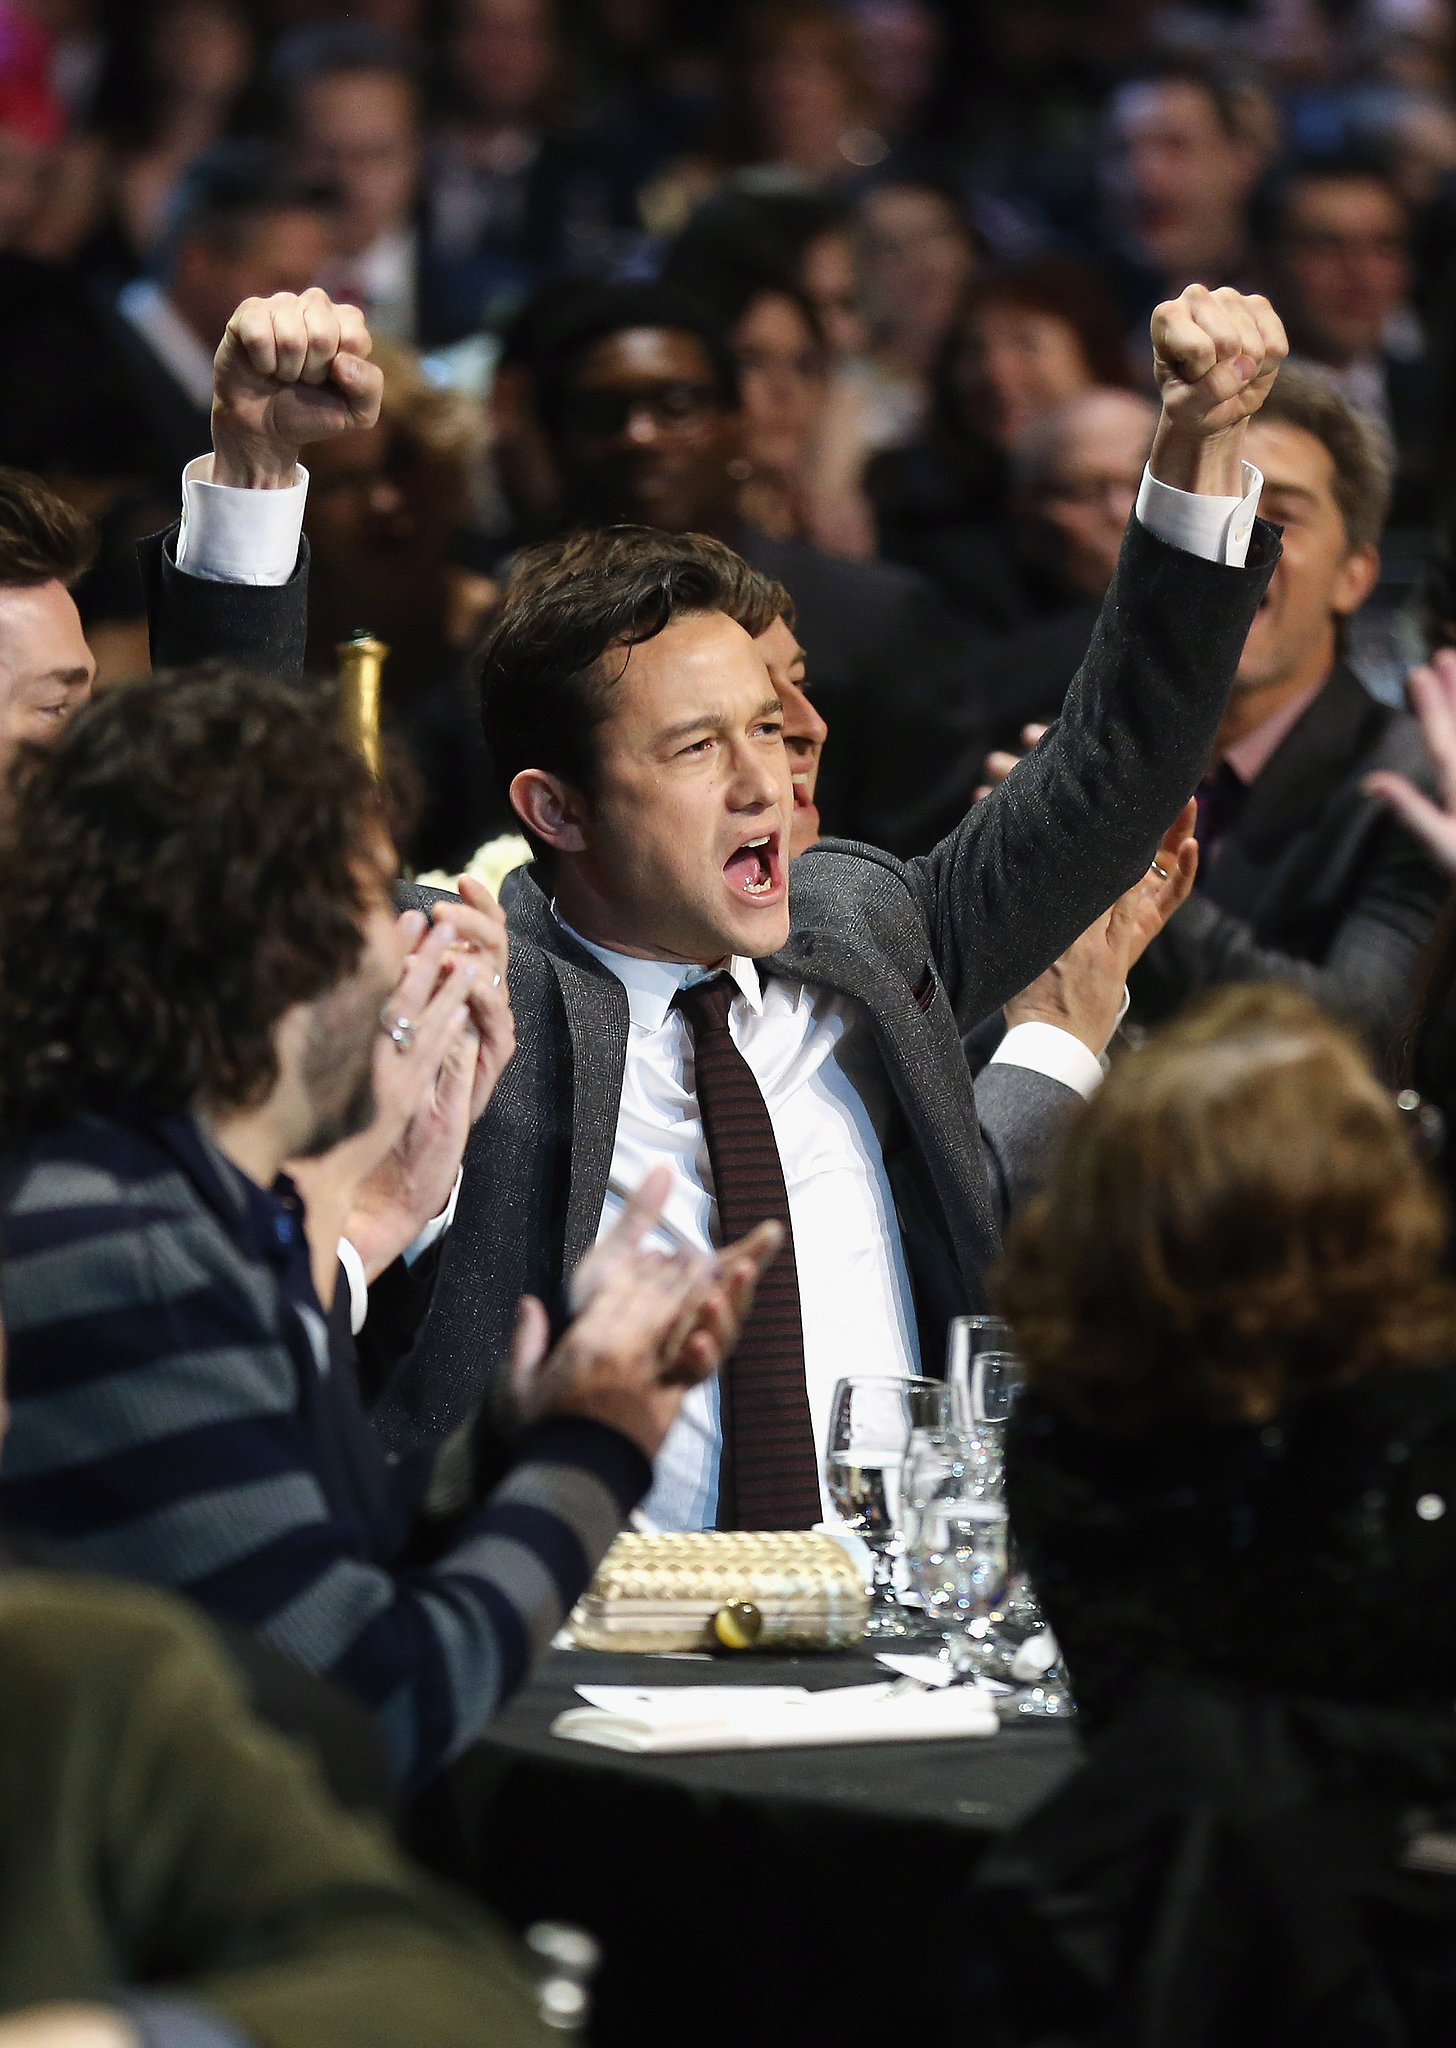 Joseph Gordon-Levitt cheered at the People's Choice Awards.